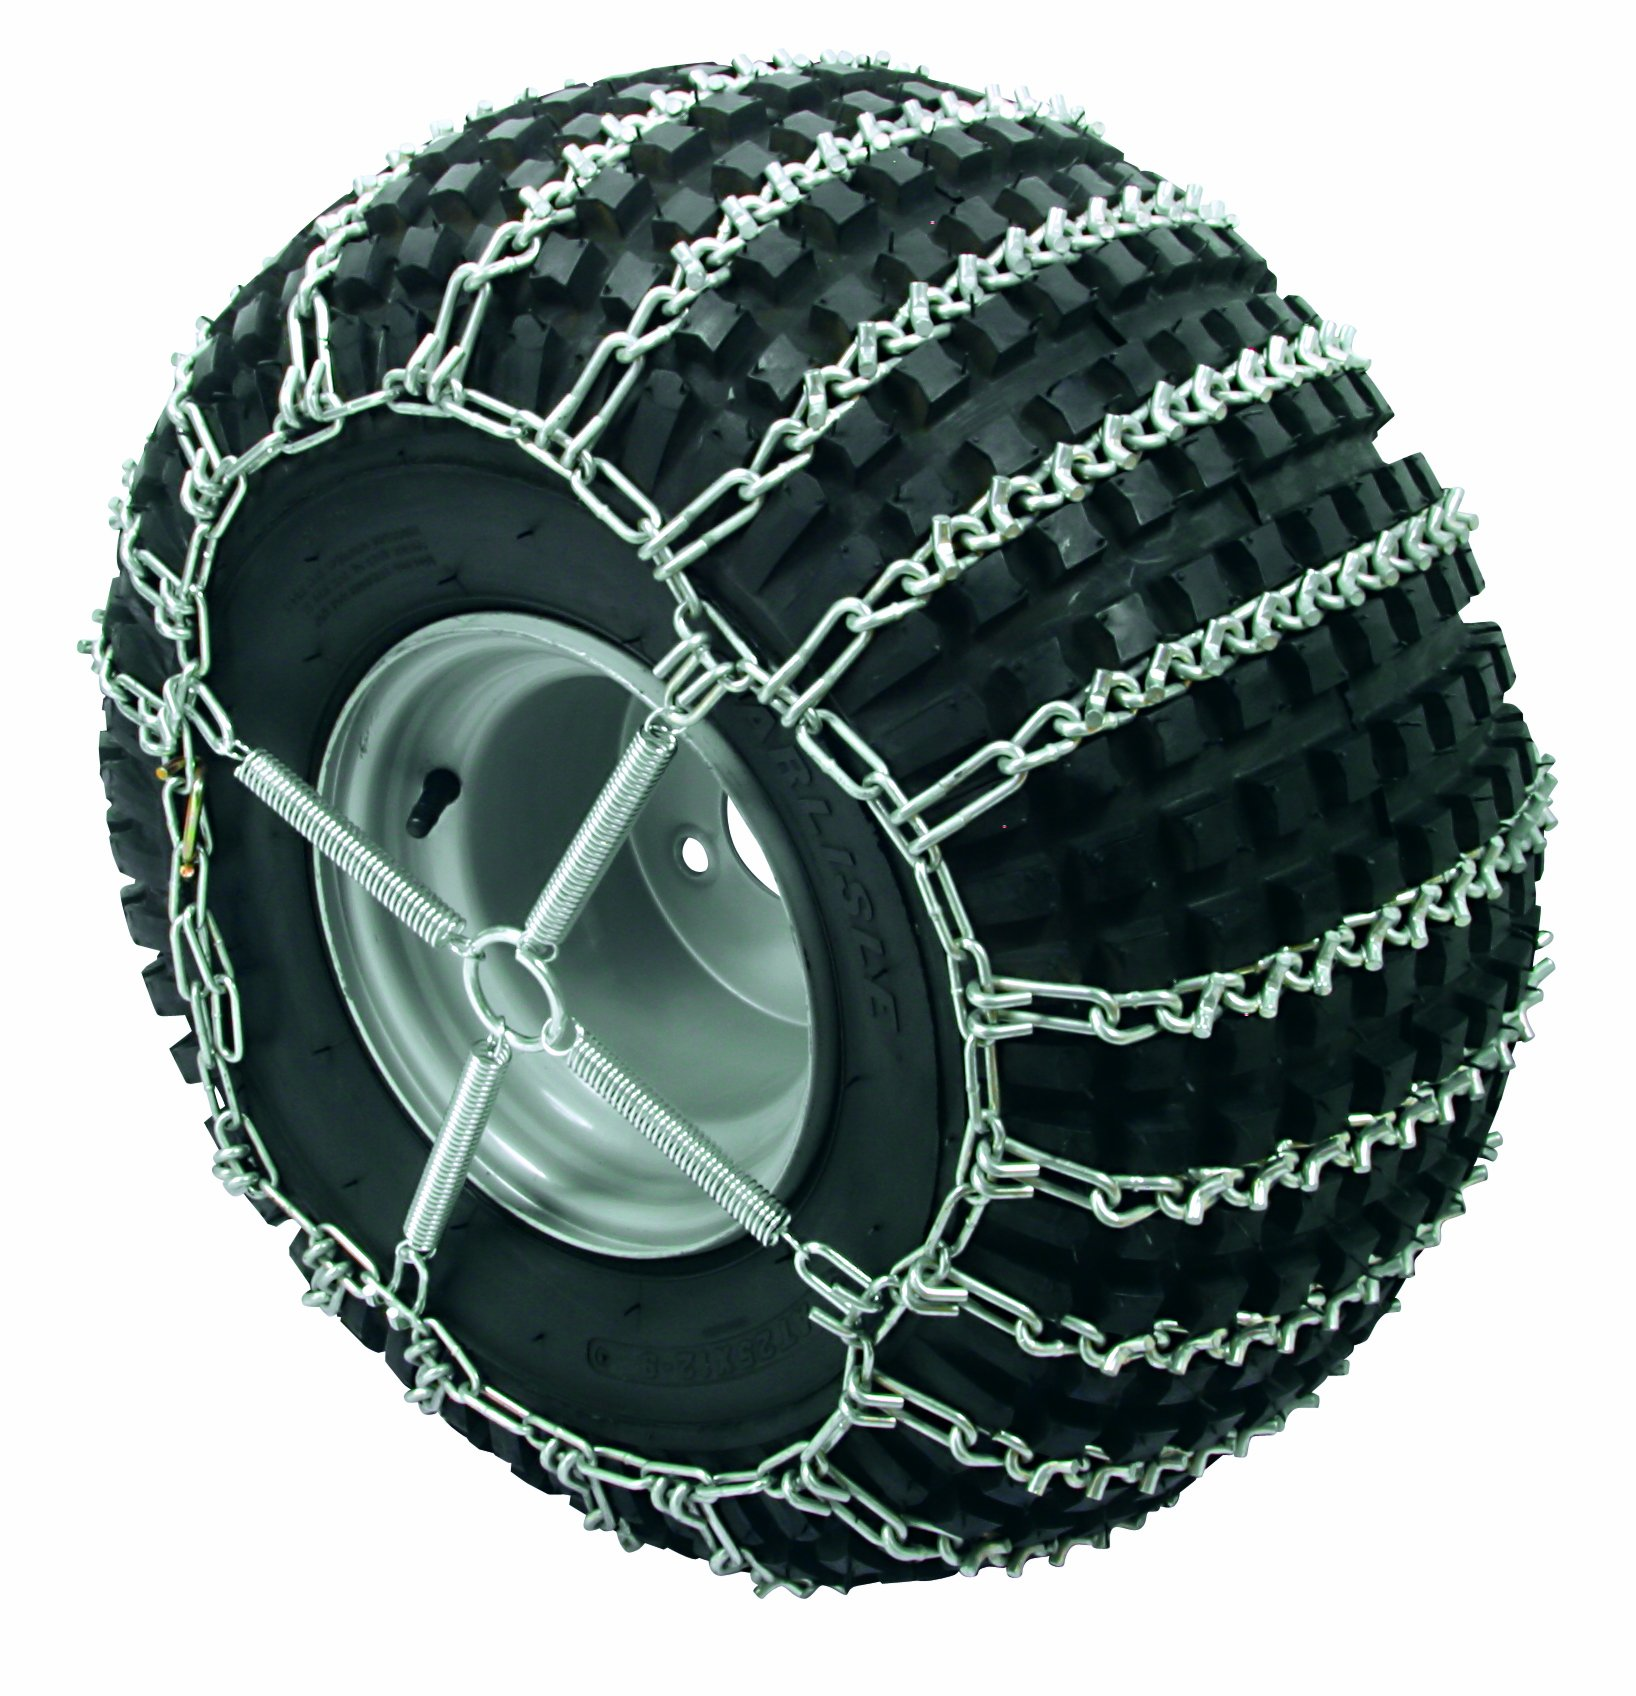 Security Chain Company 1064756 ATV Trac V-Bar Tire Traction Chain by Security Chain (Image #3)